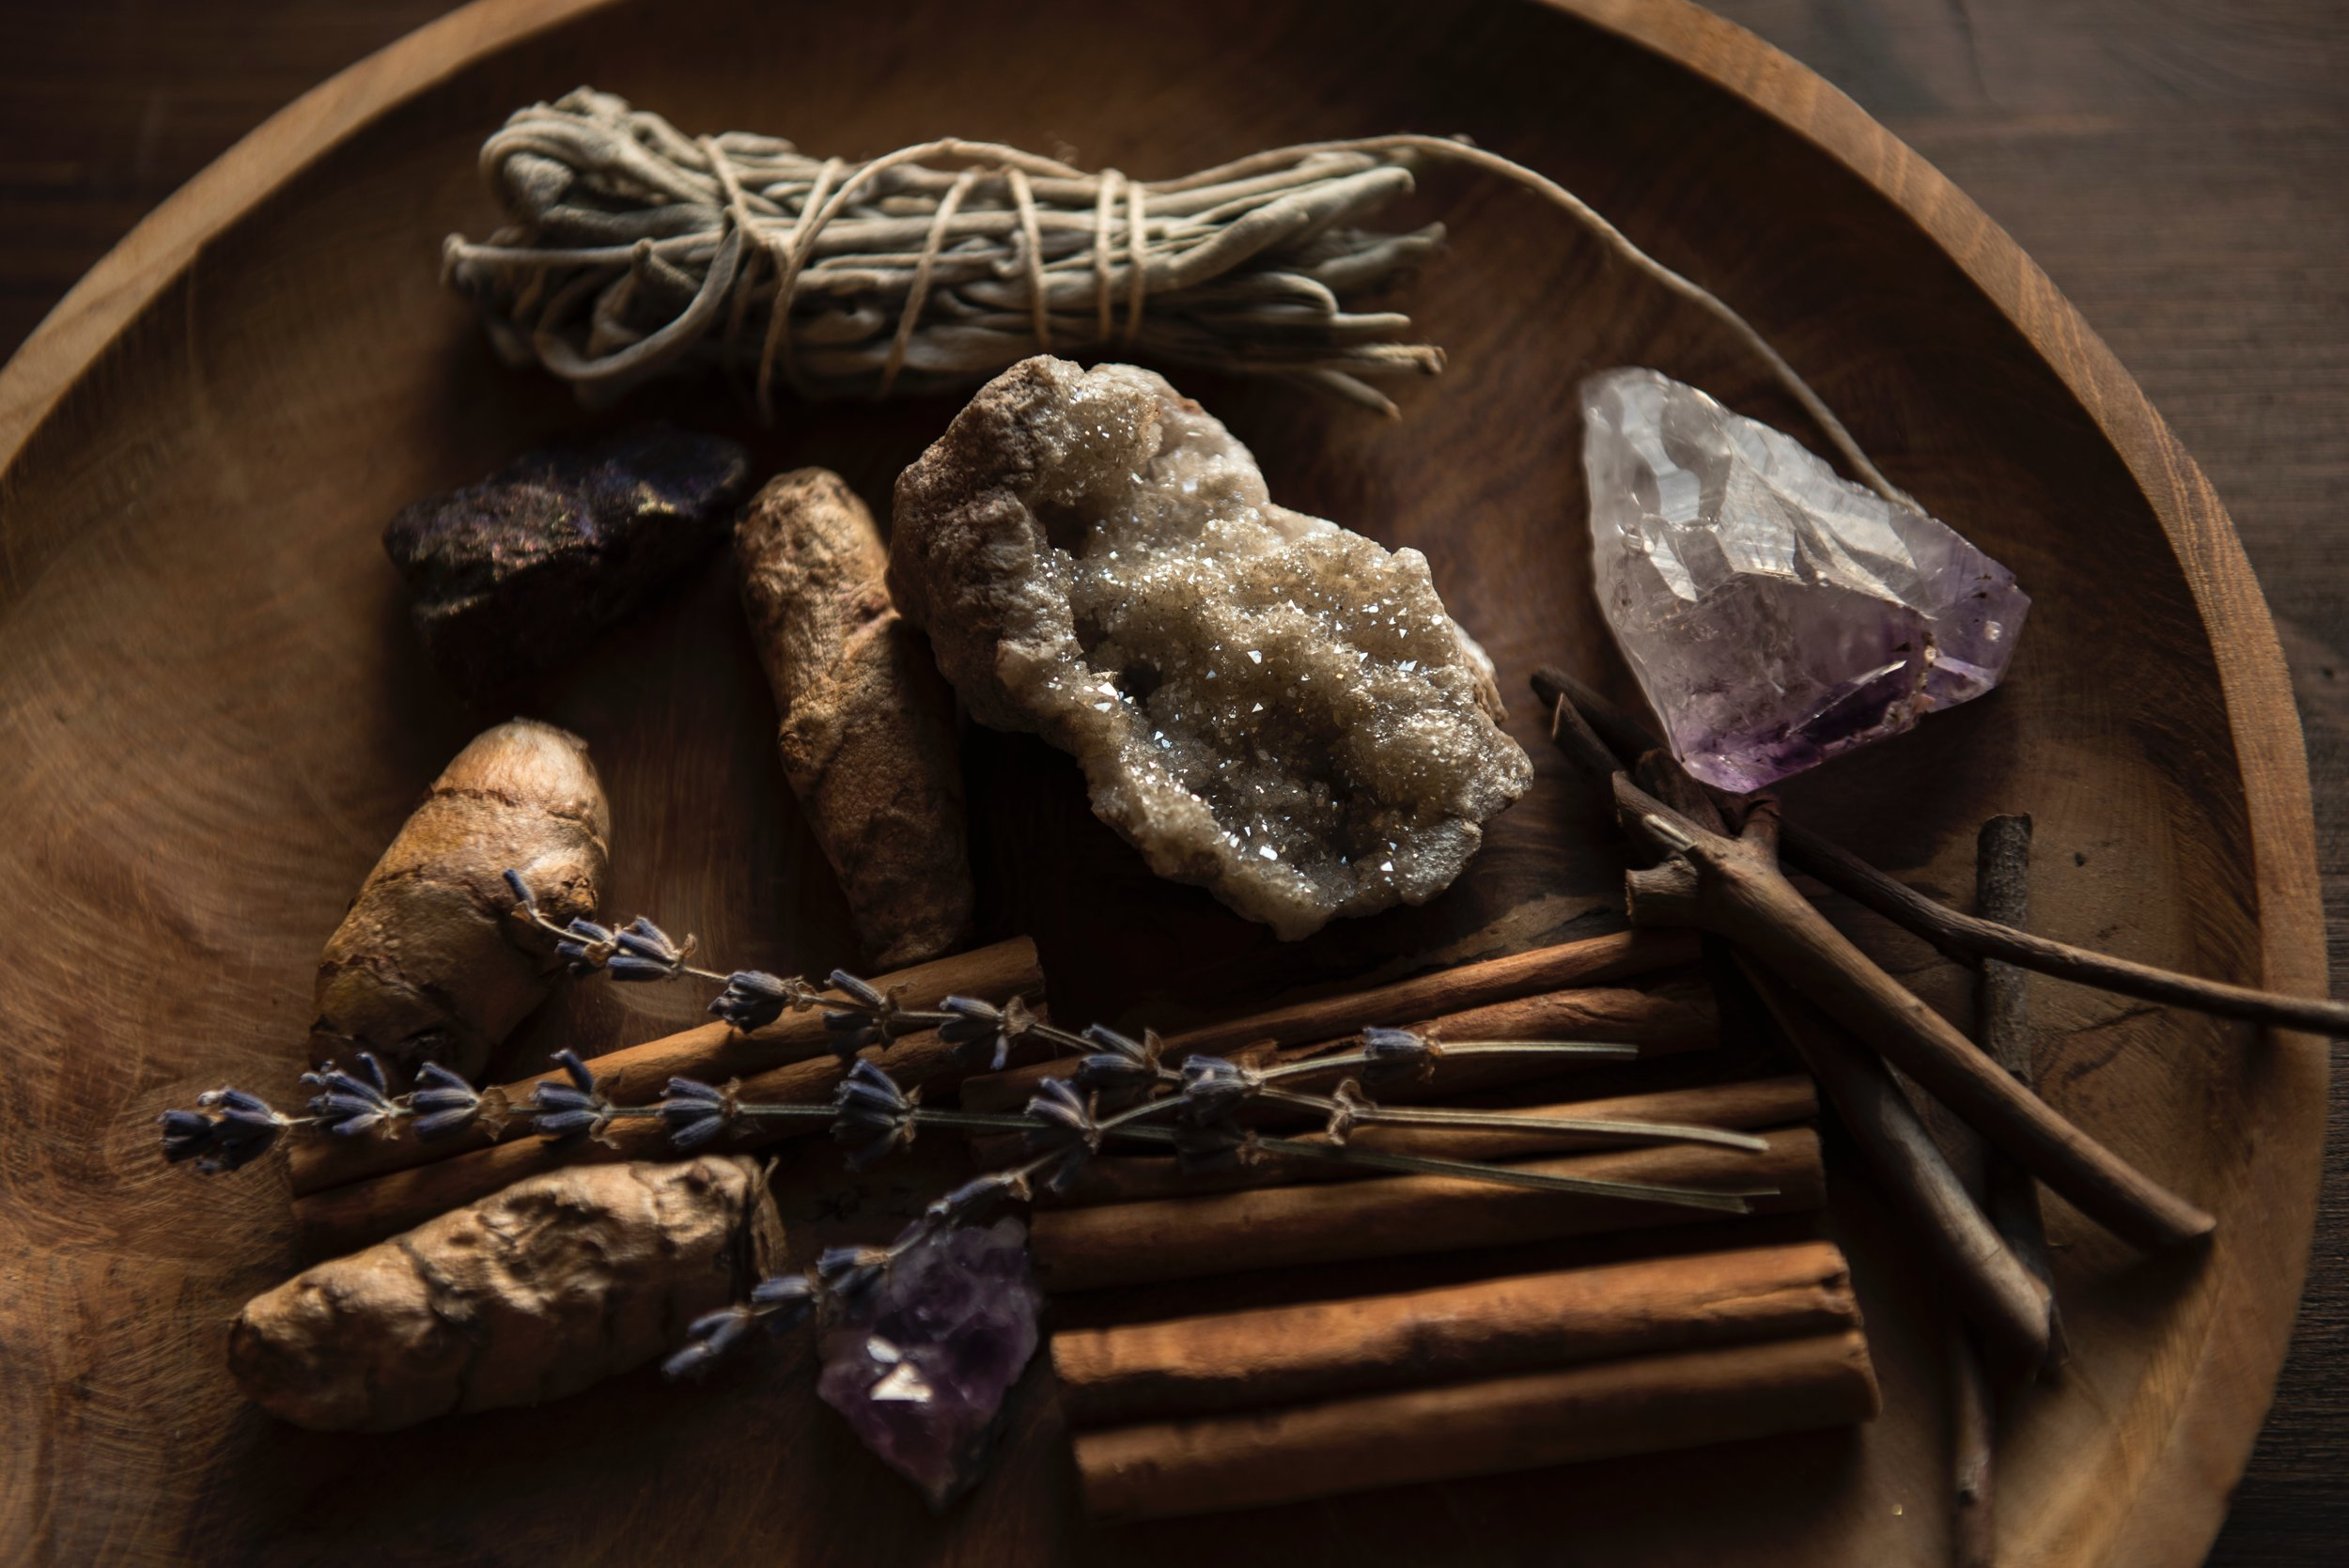 Herbs and crystals on a wooden platter.